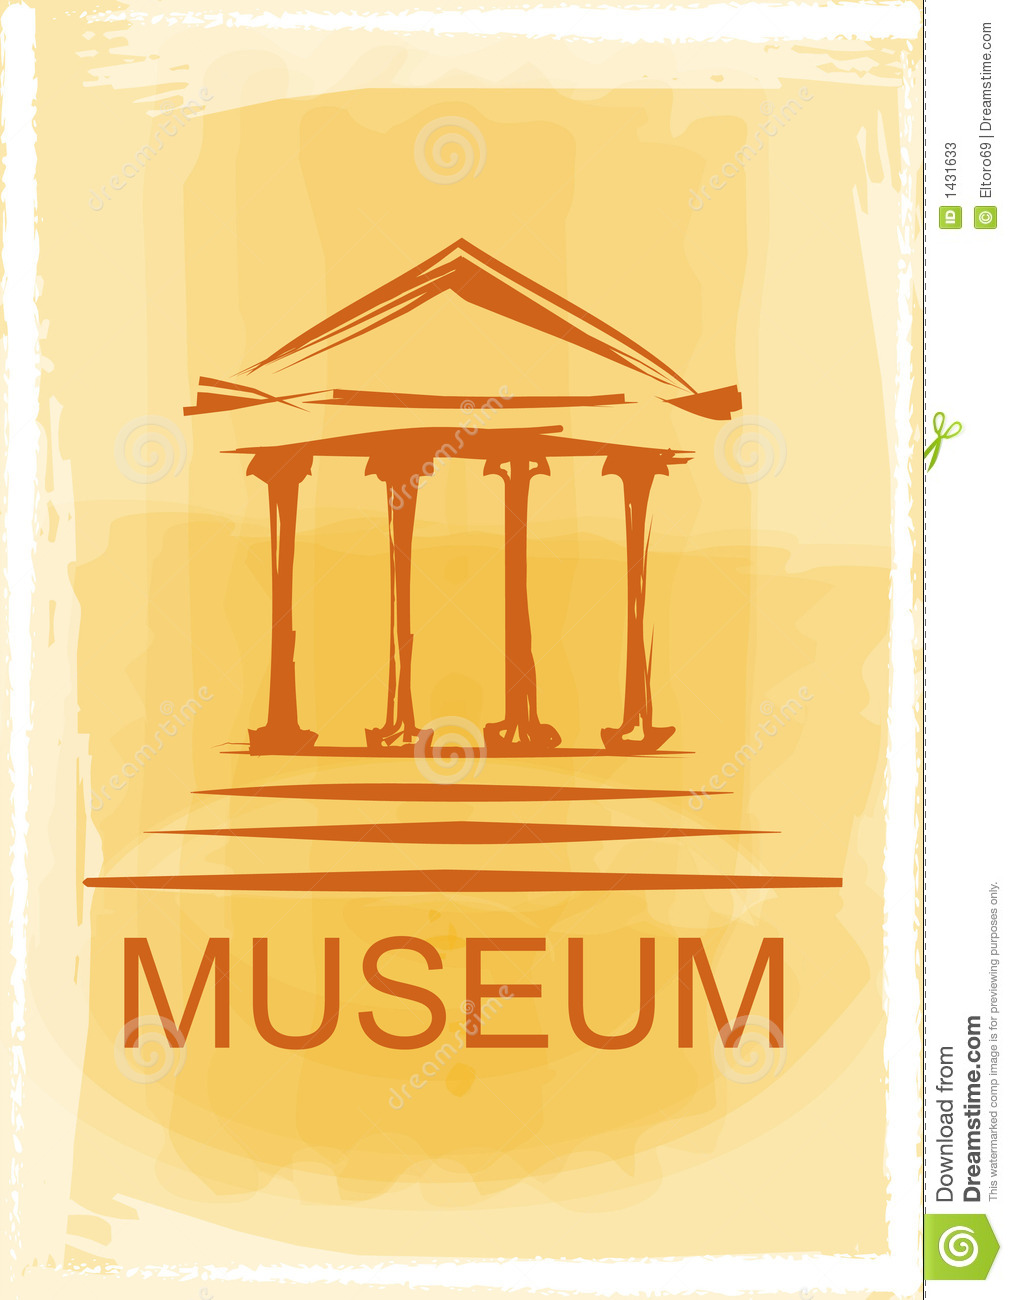 Museum clipart museo #4